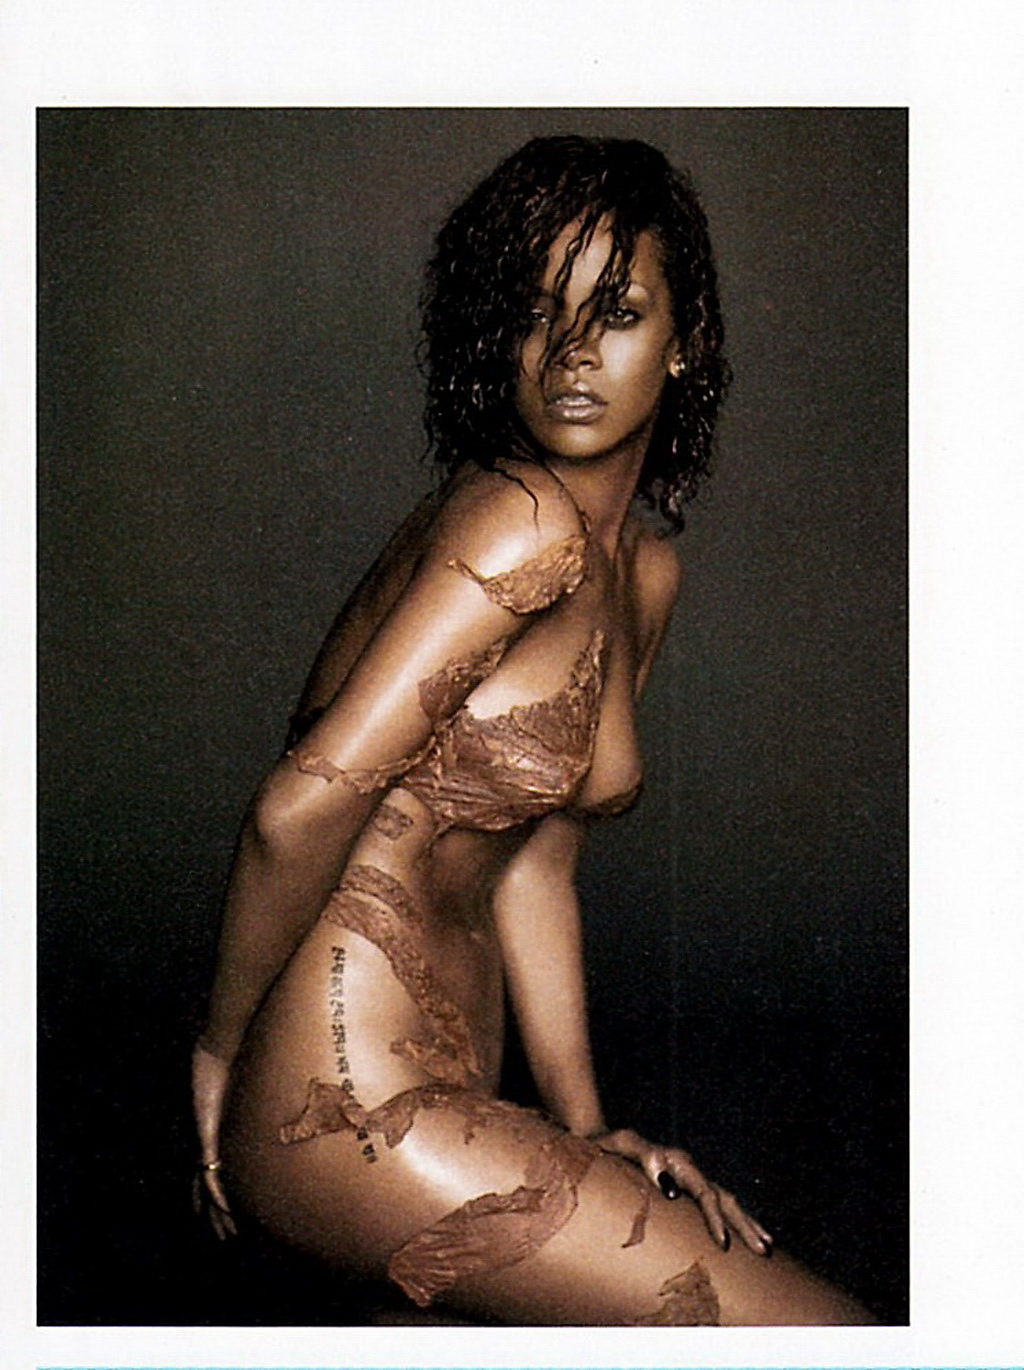 Sorry, Rihanna gets naked opinion